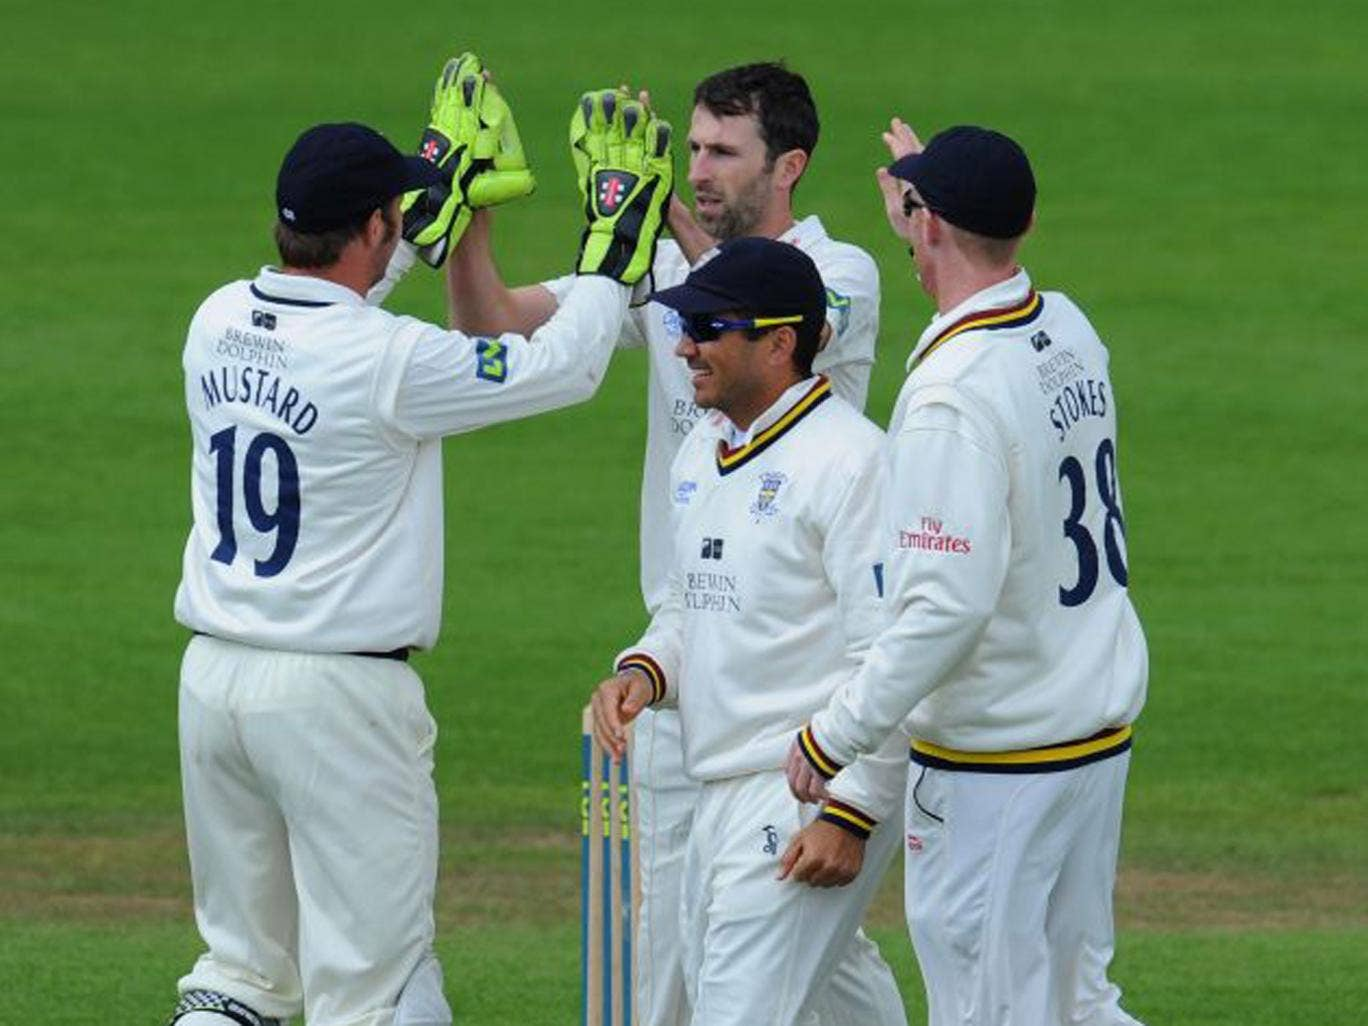 Graham Onions took five wickets including that of Joe Denly